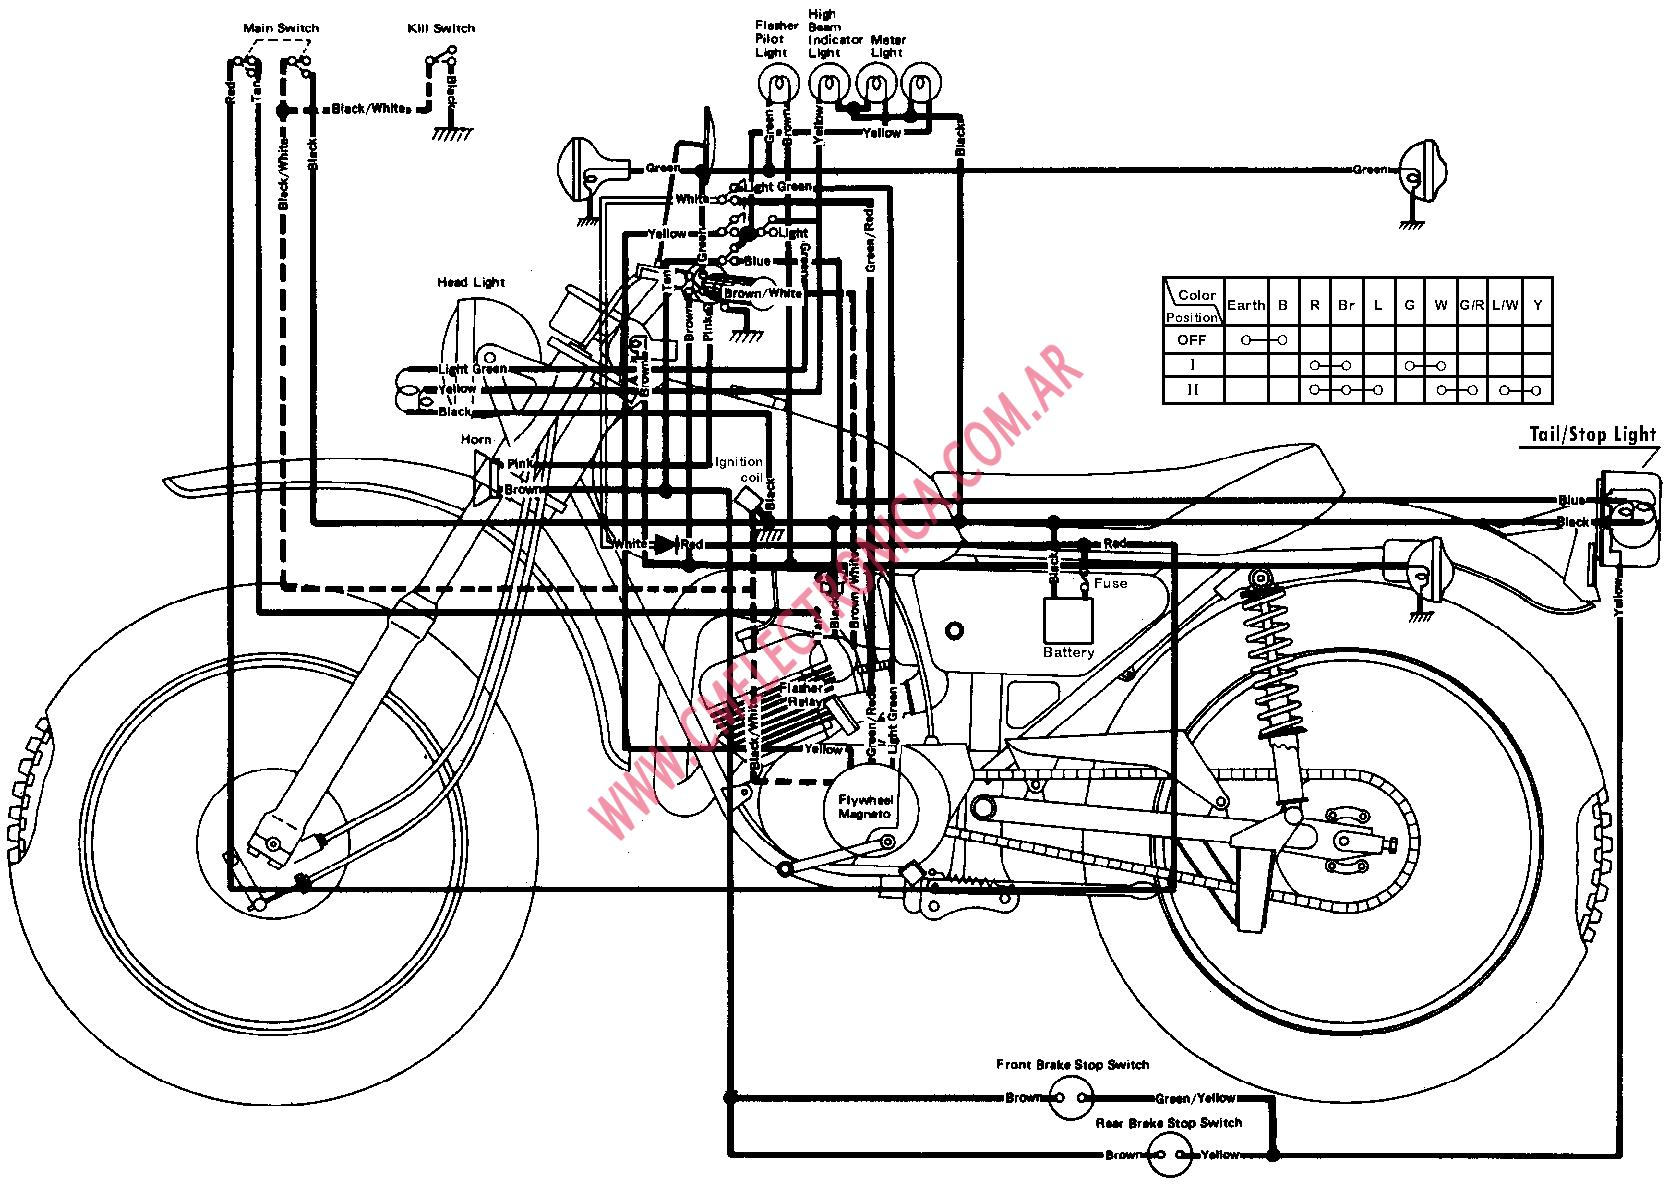 Yamaha 250 Atv Wiring Diagram Great Design Of Schematics 1980 Dt Gmc Fuse Box Diagrams Moto 4